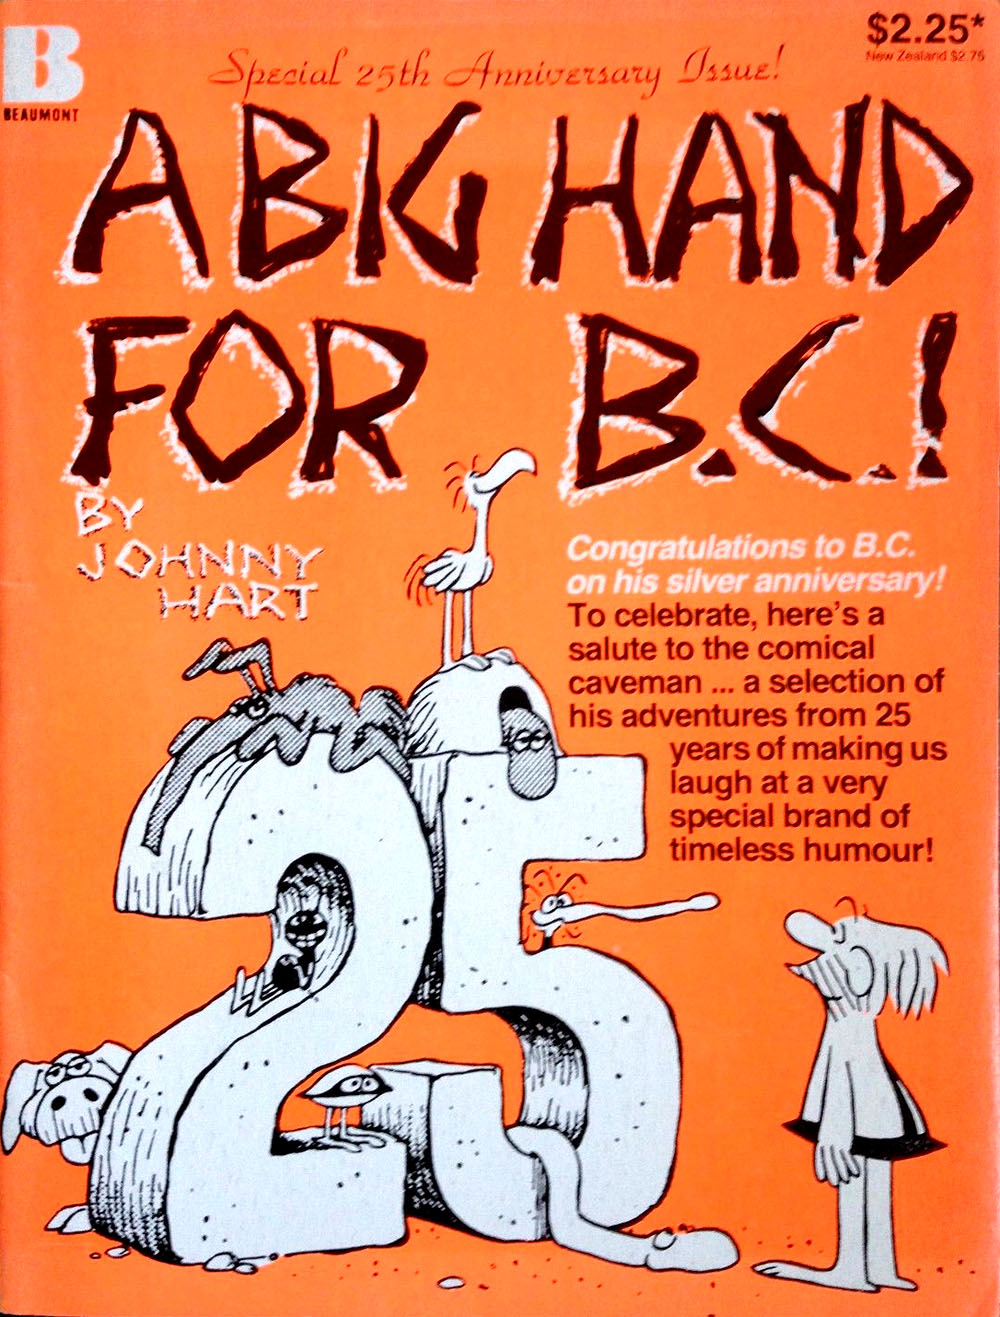 A Big Hand for B.C.!